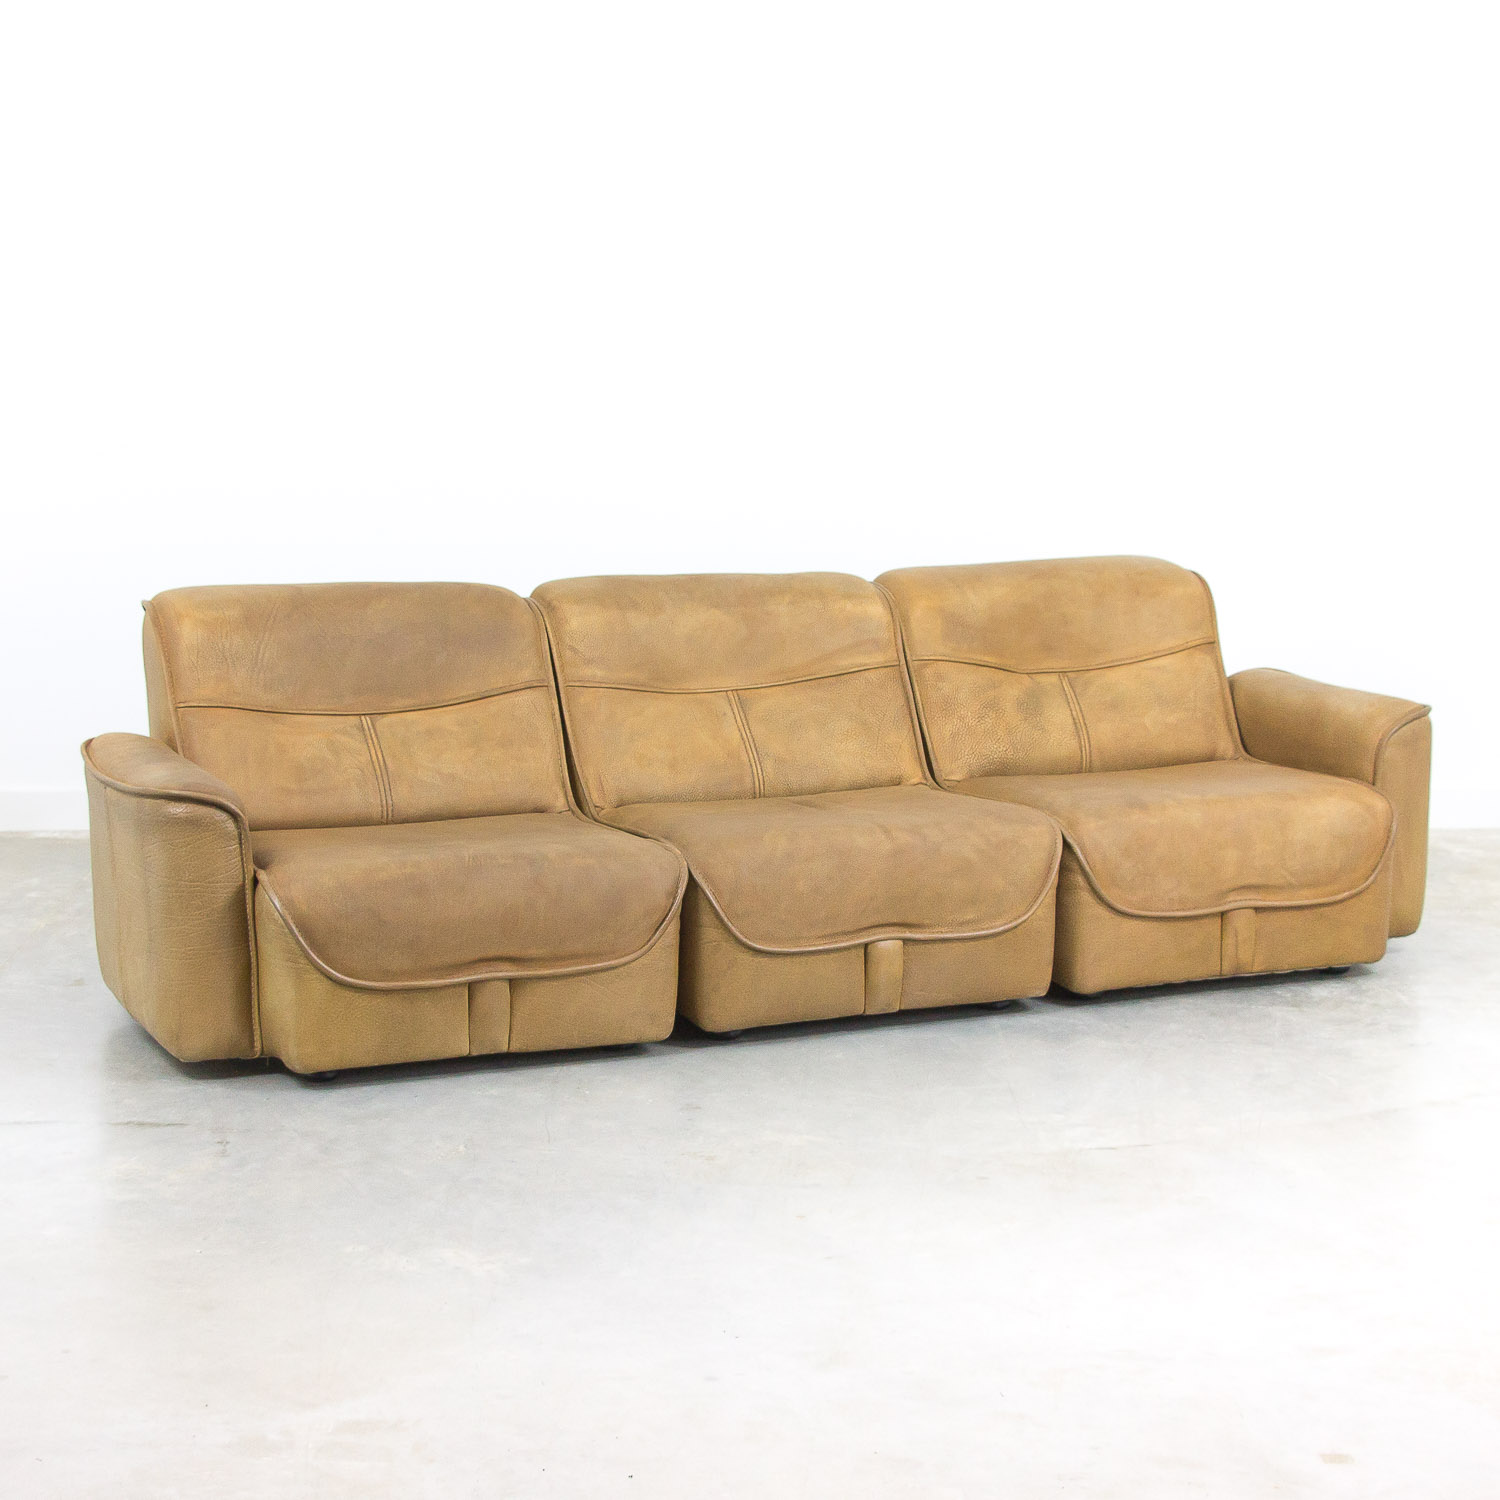 Modular 3-seater buffalo leather sofa